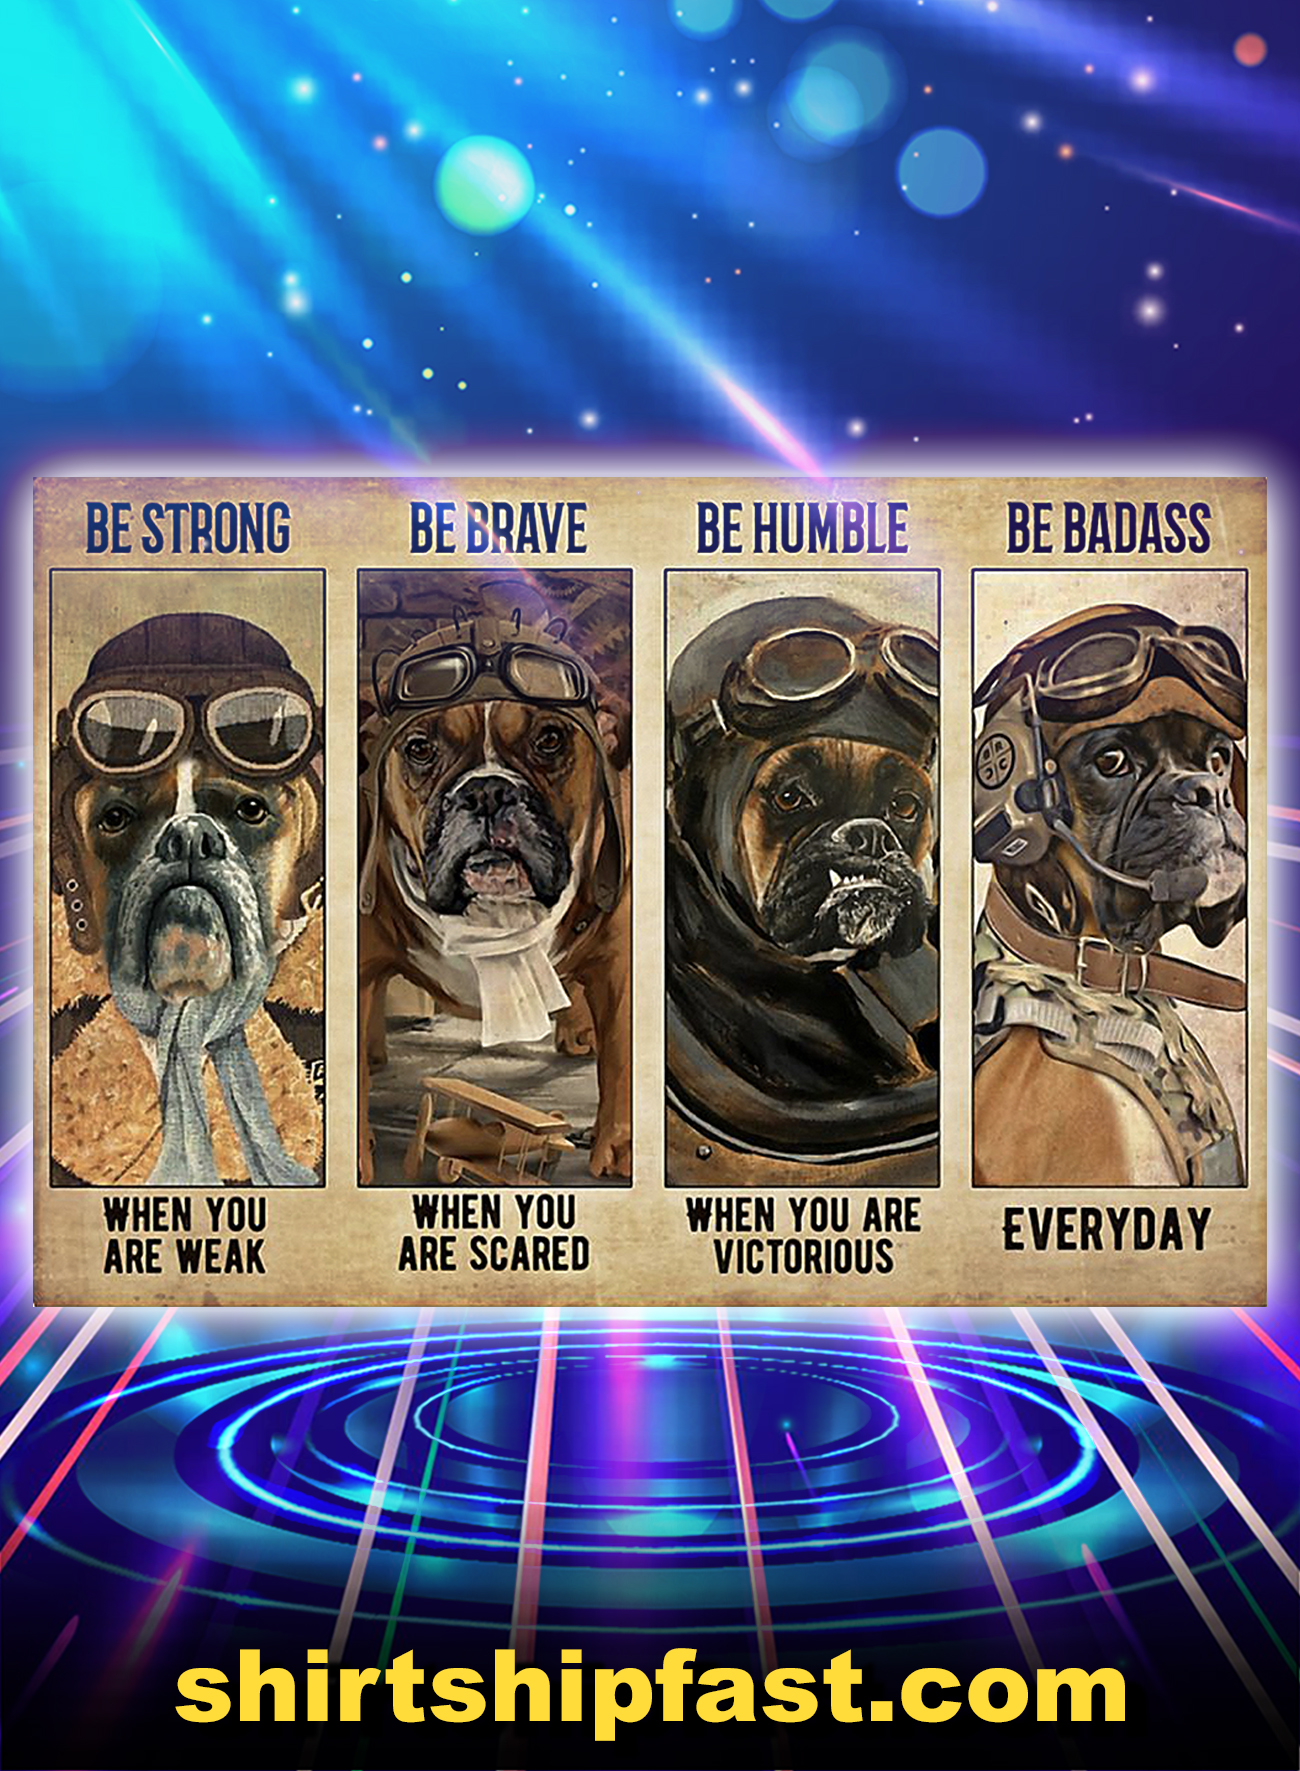 Boxer pilot be strong be brave be humble be badass poster - A4